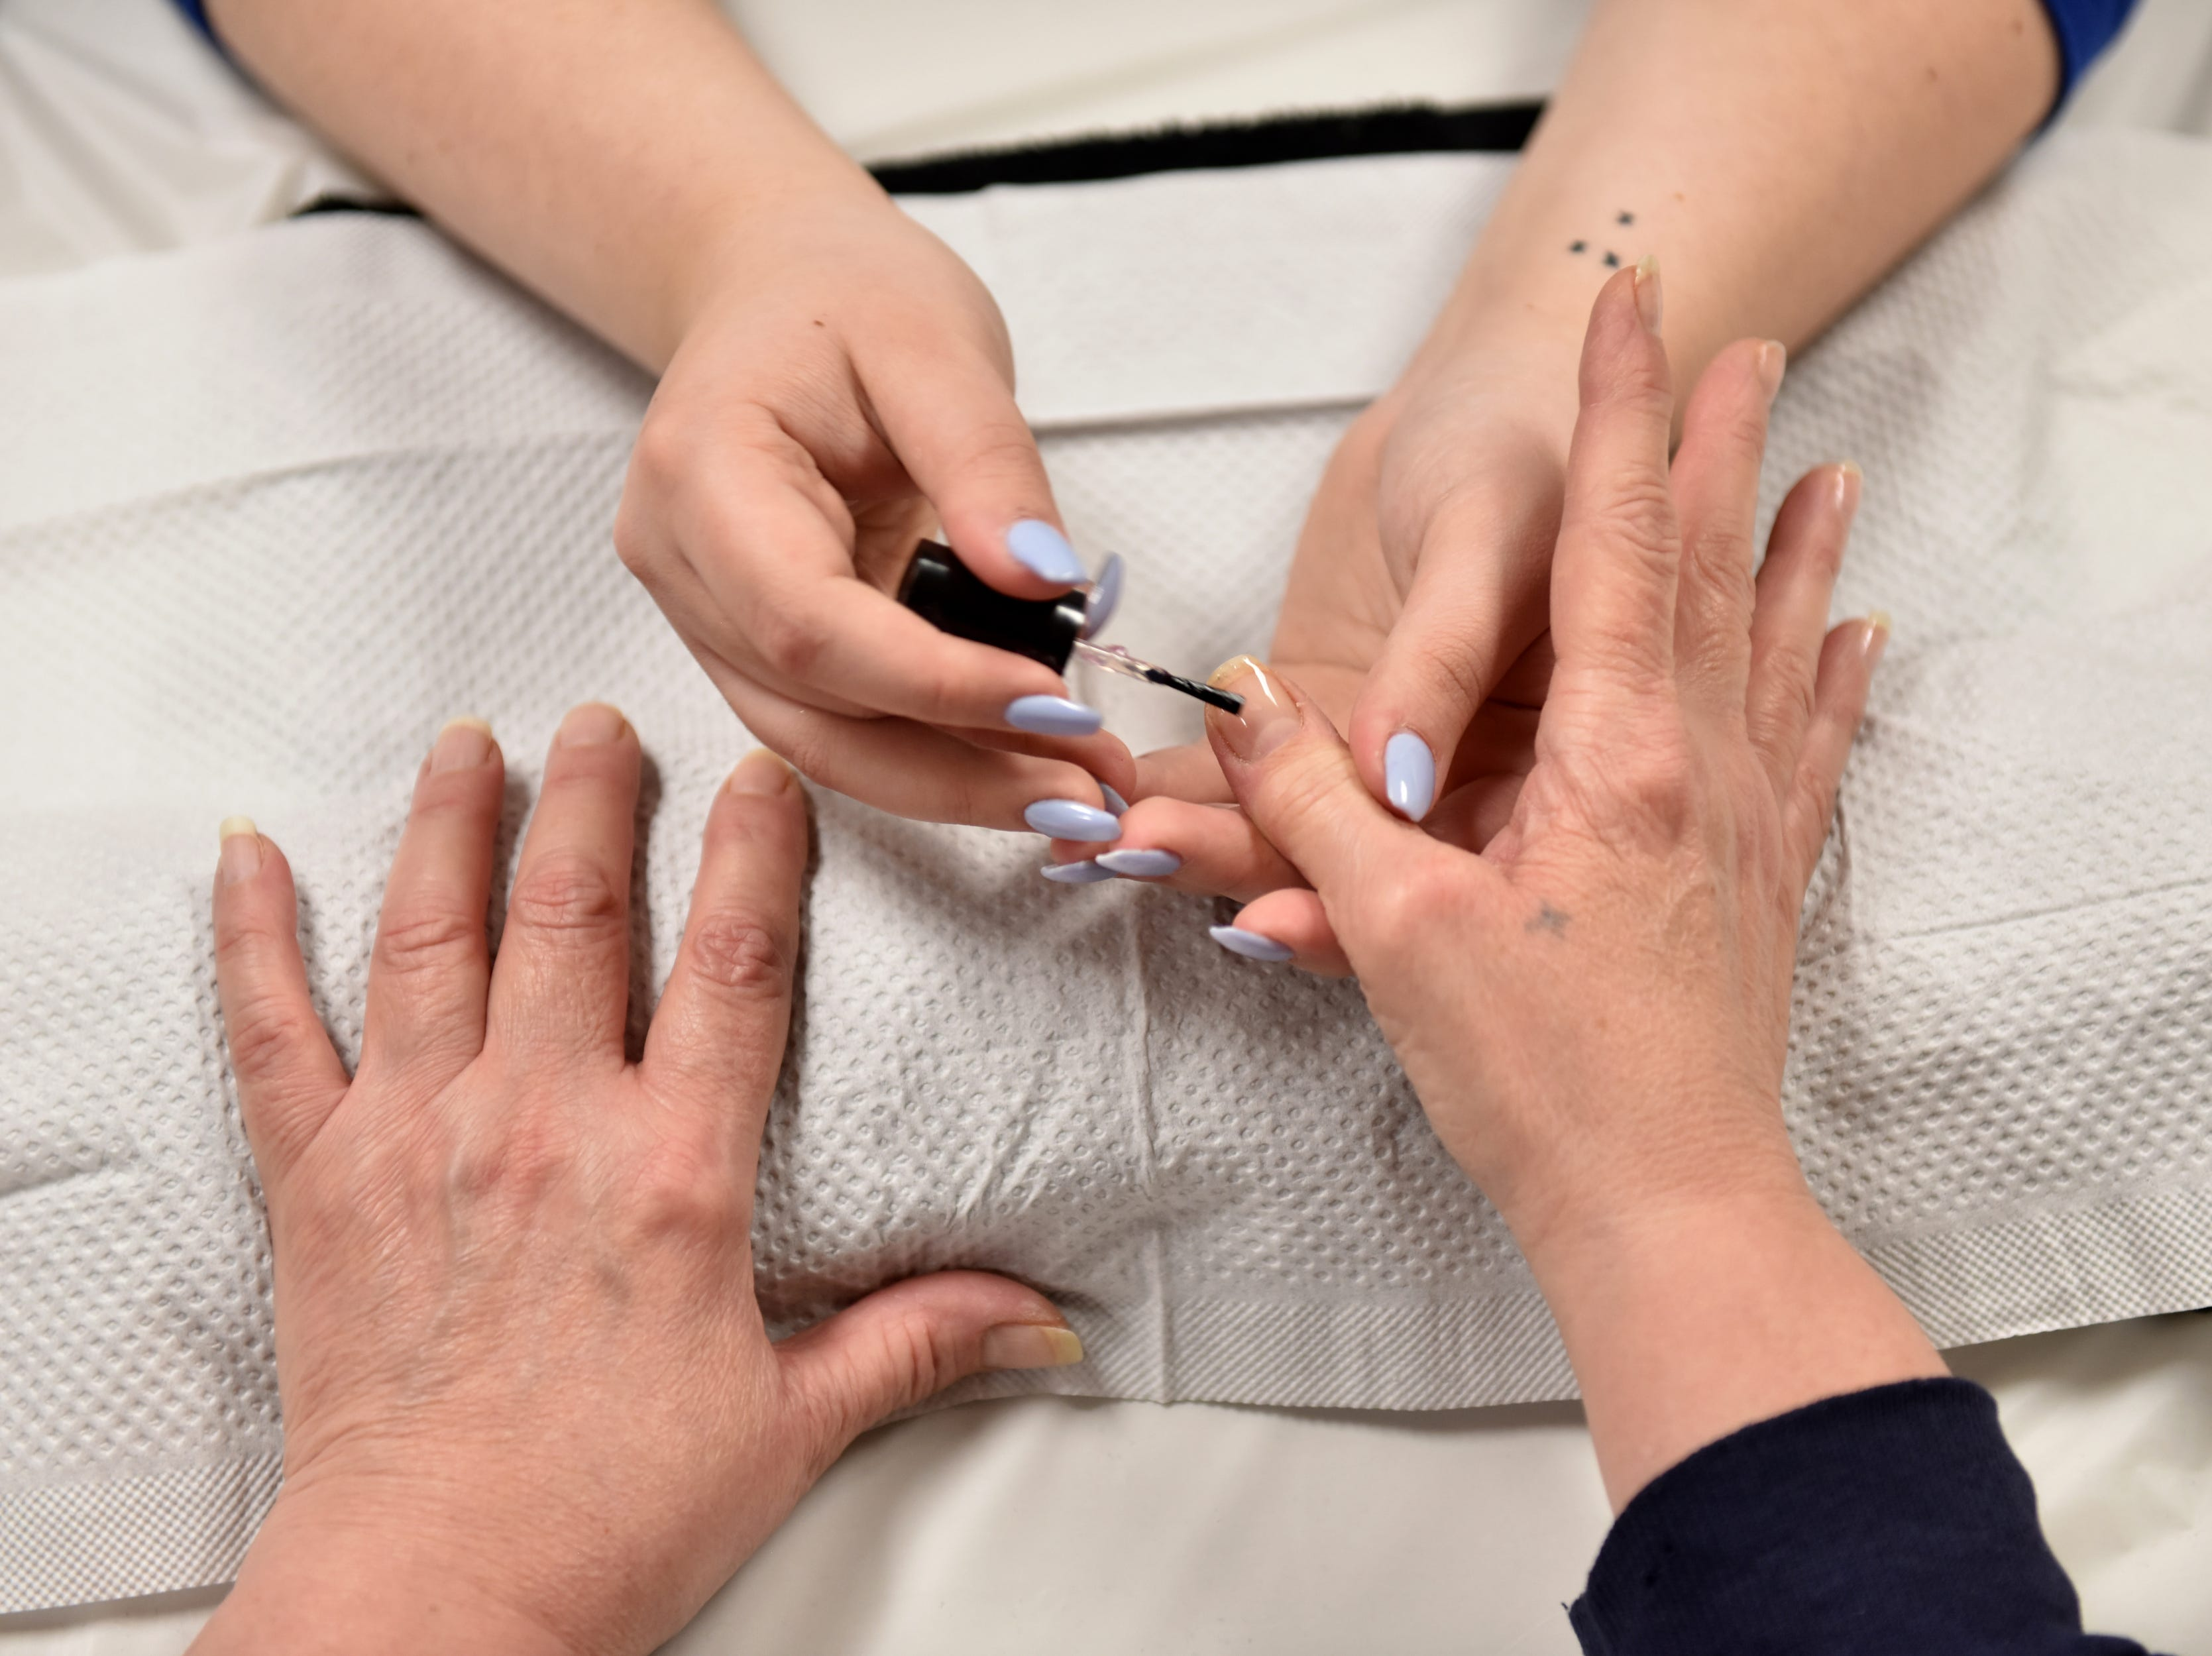 A woman receives a manicure that was given to her by a student of the Parisian Beauty Academy at the Bergen County Human Services Center in Hackensack, on Wednesday January 23, 2019.